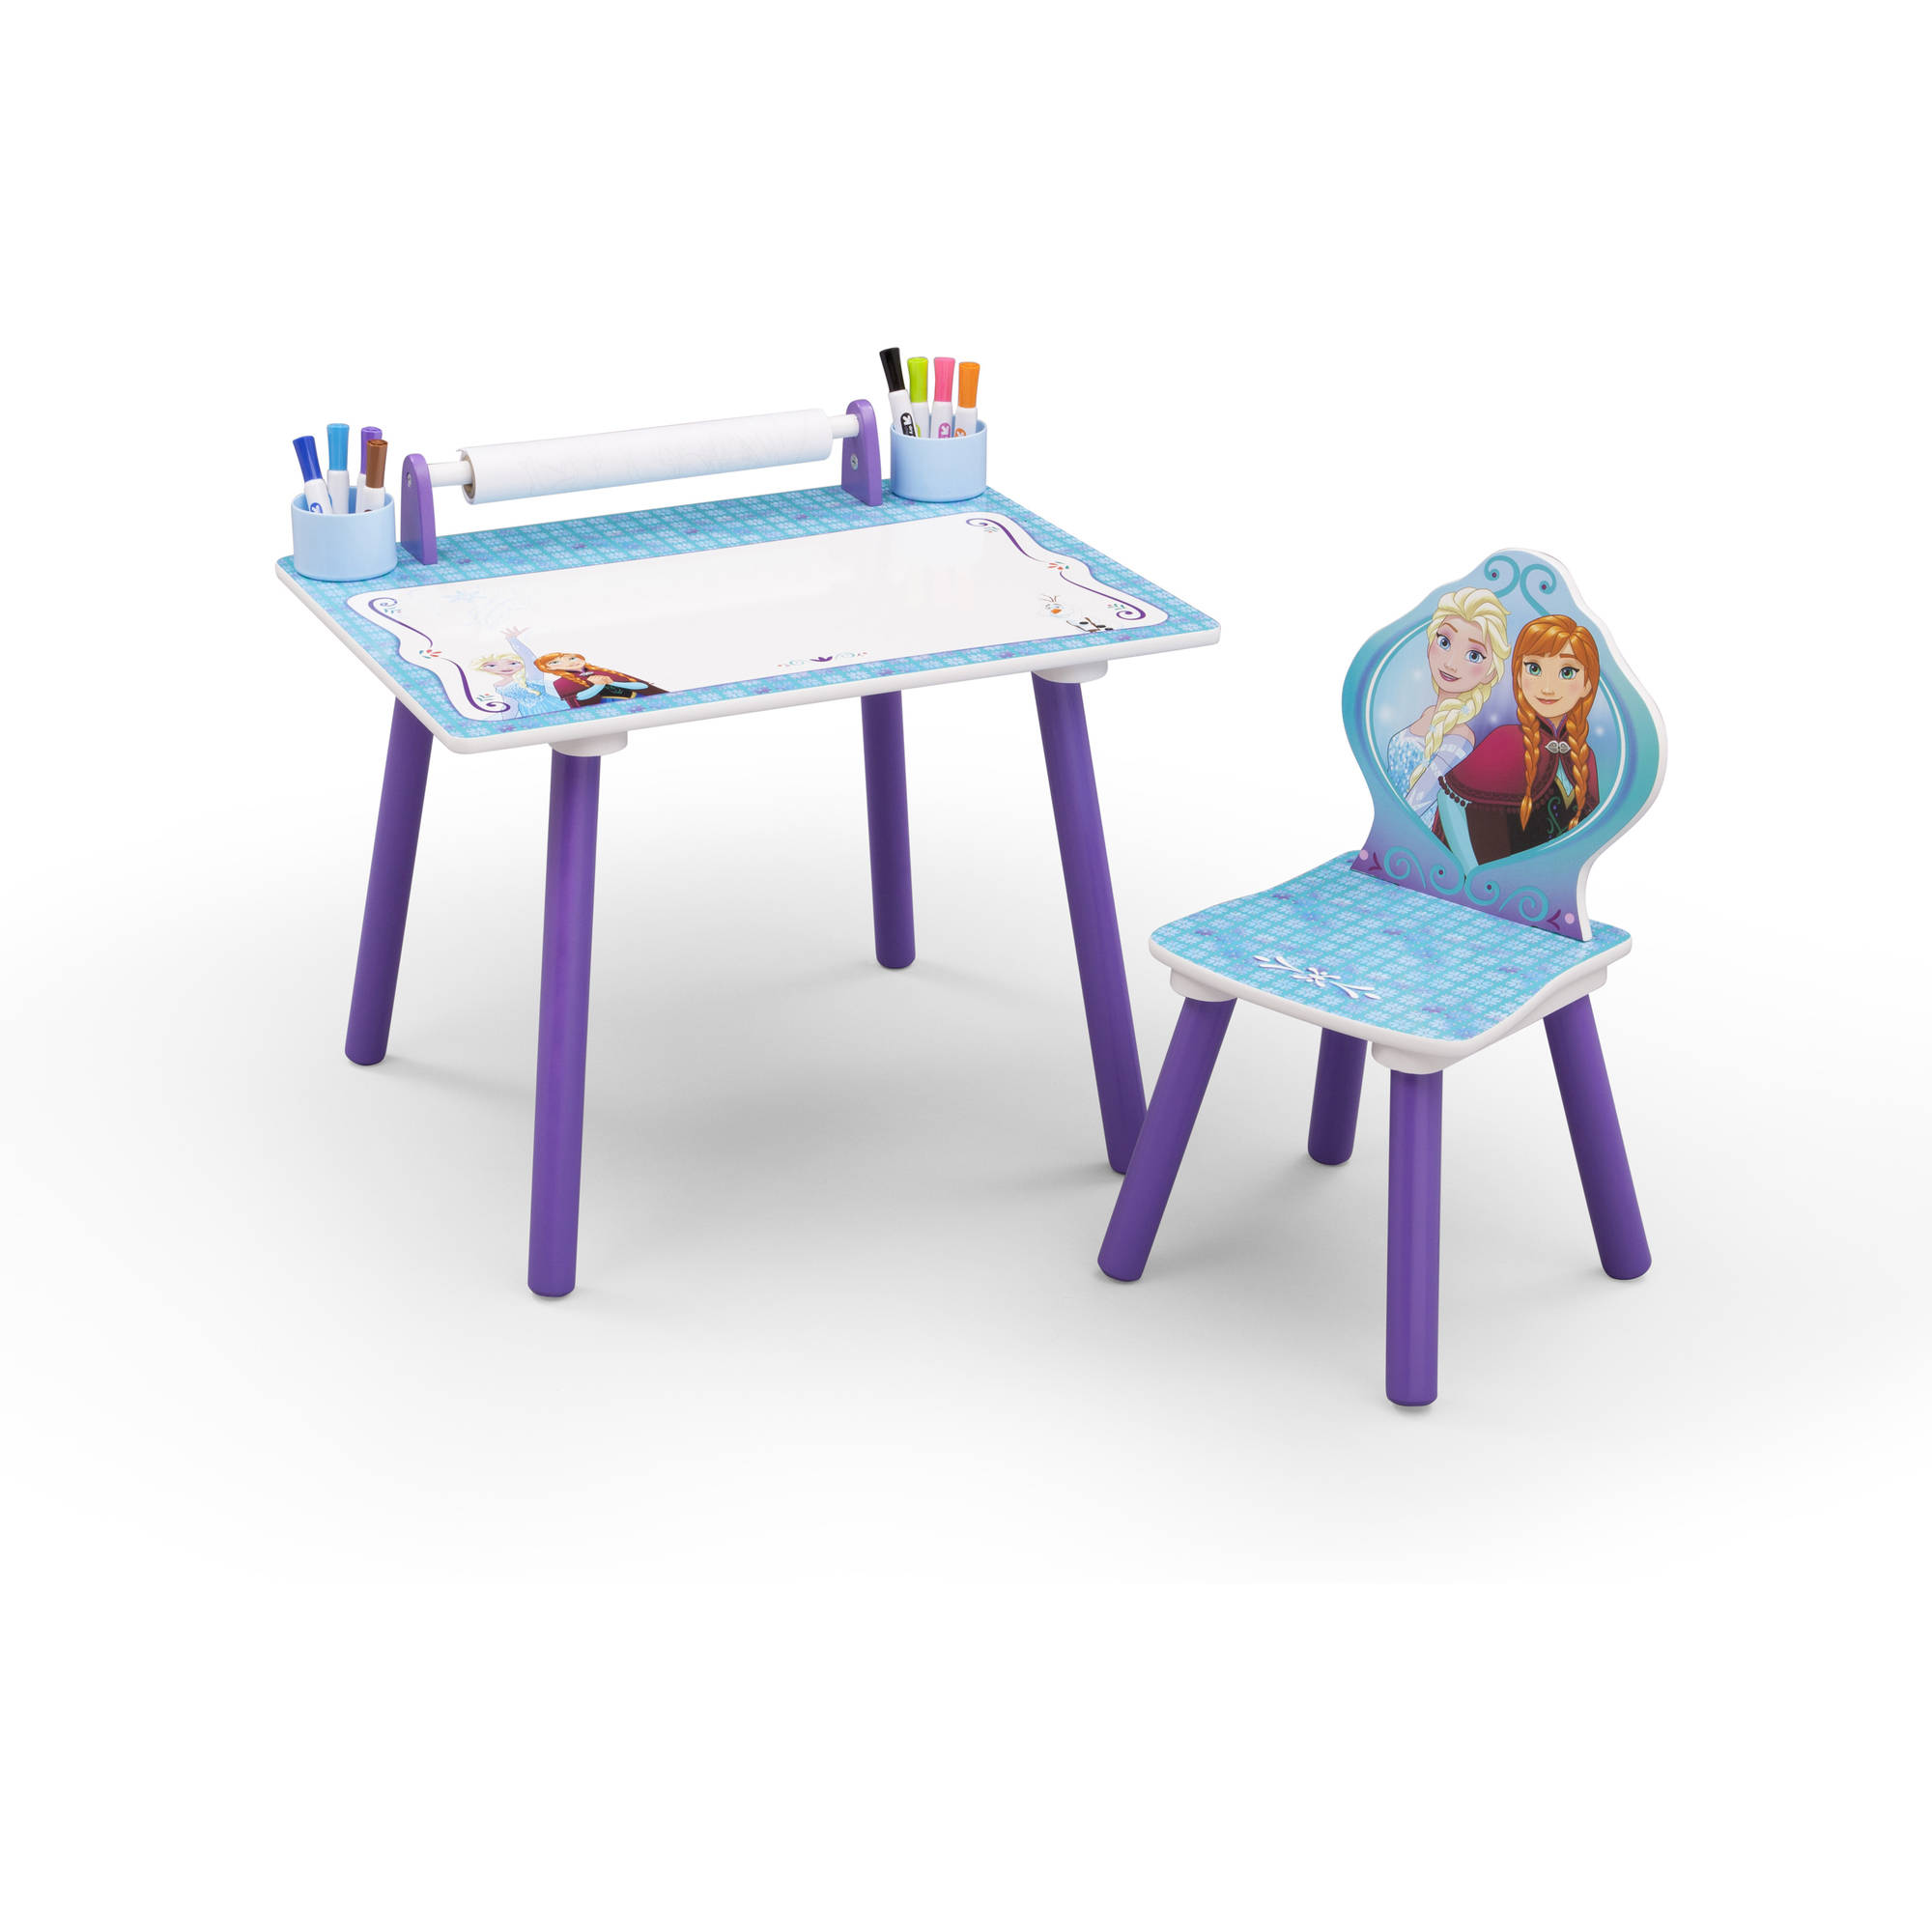 little tikes table and chairs set toys r us dining room chair covers au easy adjust play walmart